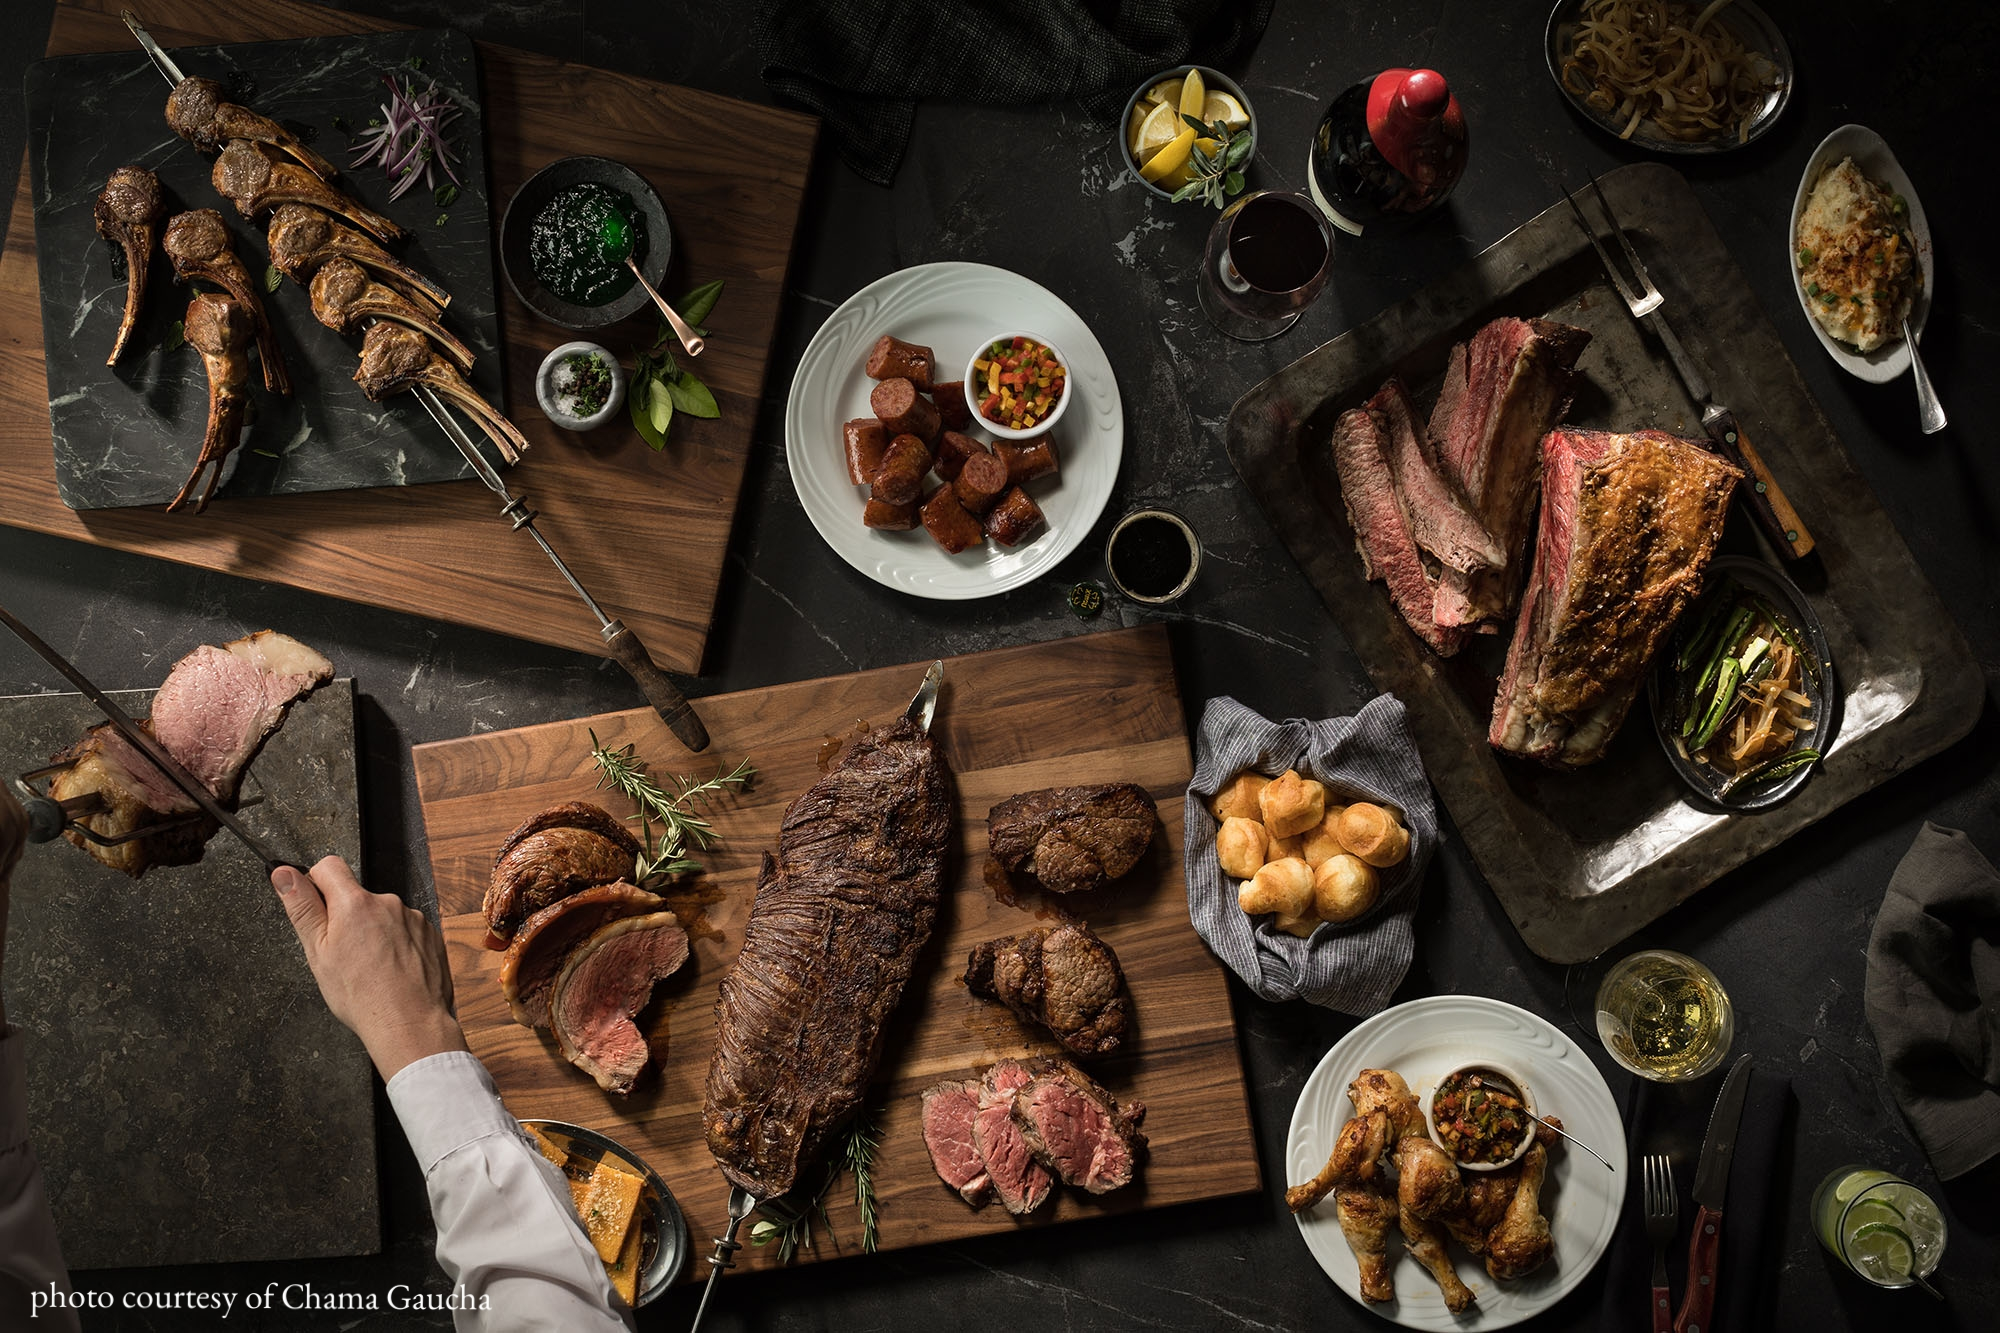 Chamagaucha Brazilian Steakhouse - An all you can eat experience you and your sweetheart will love.